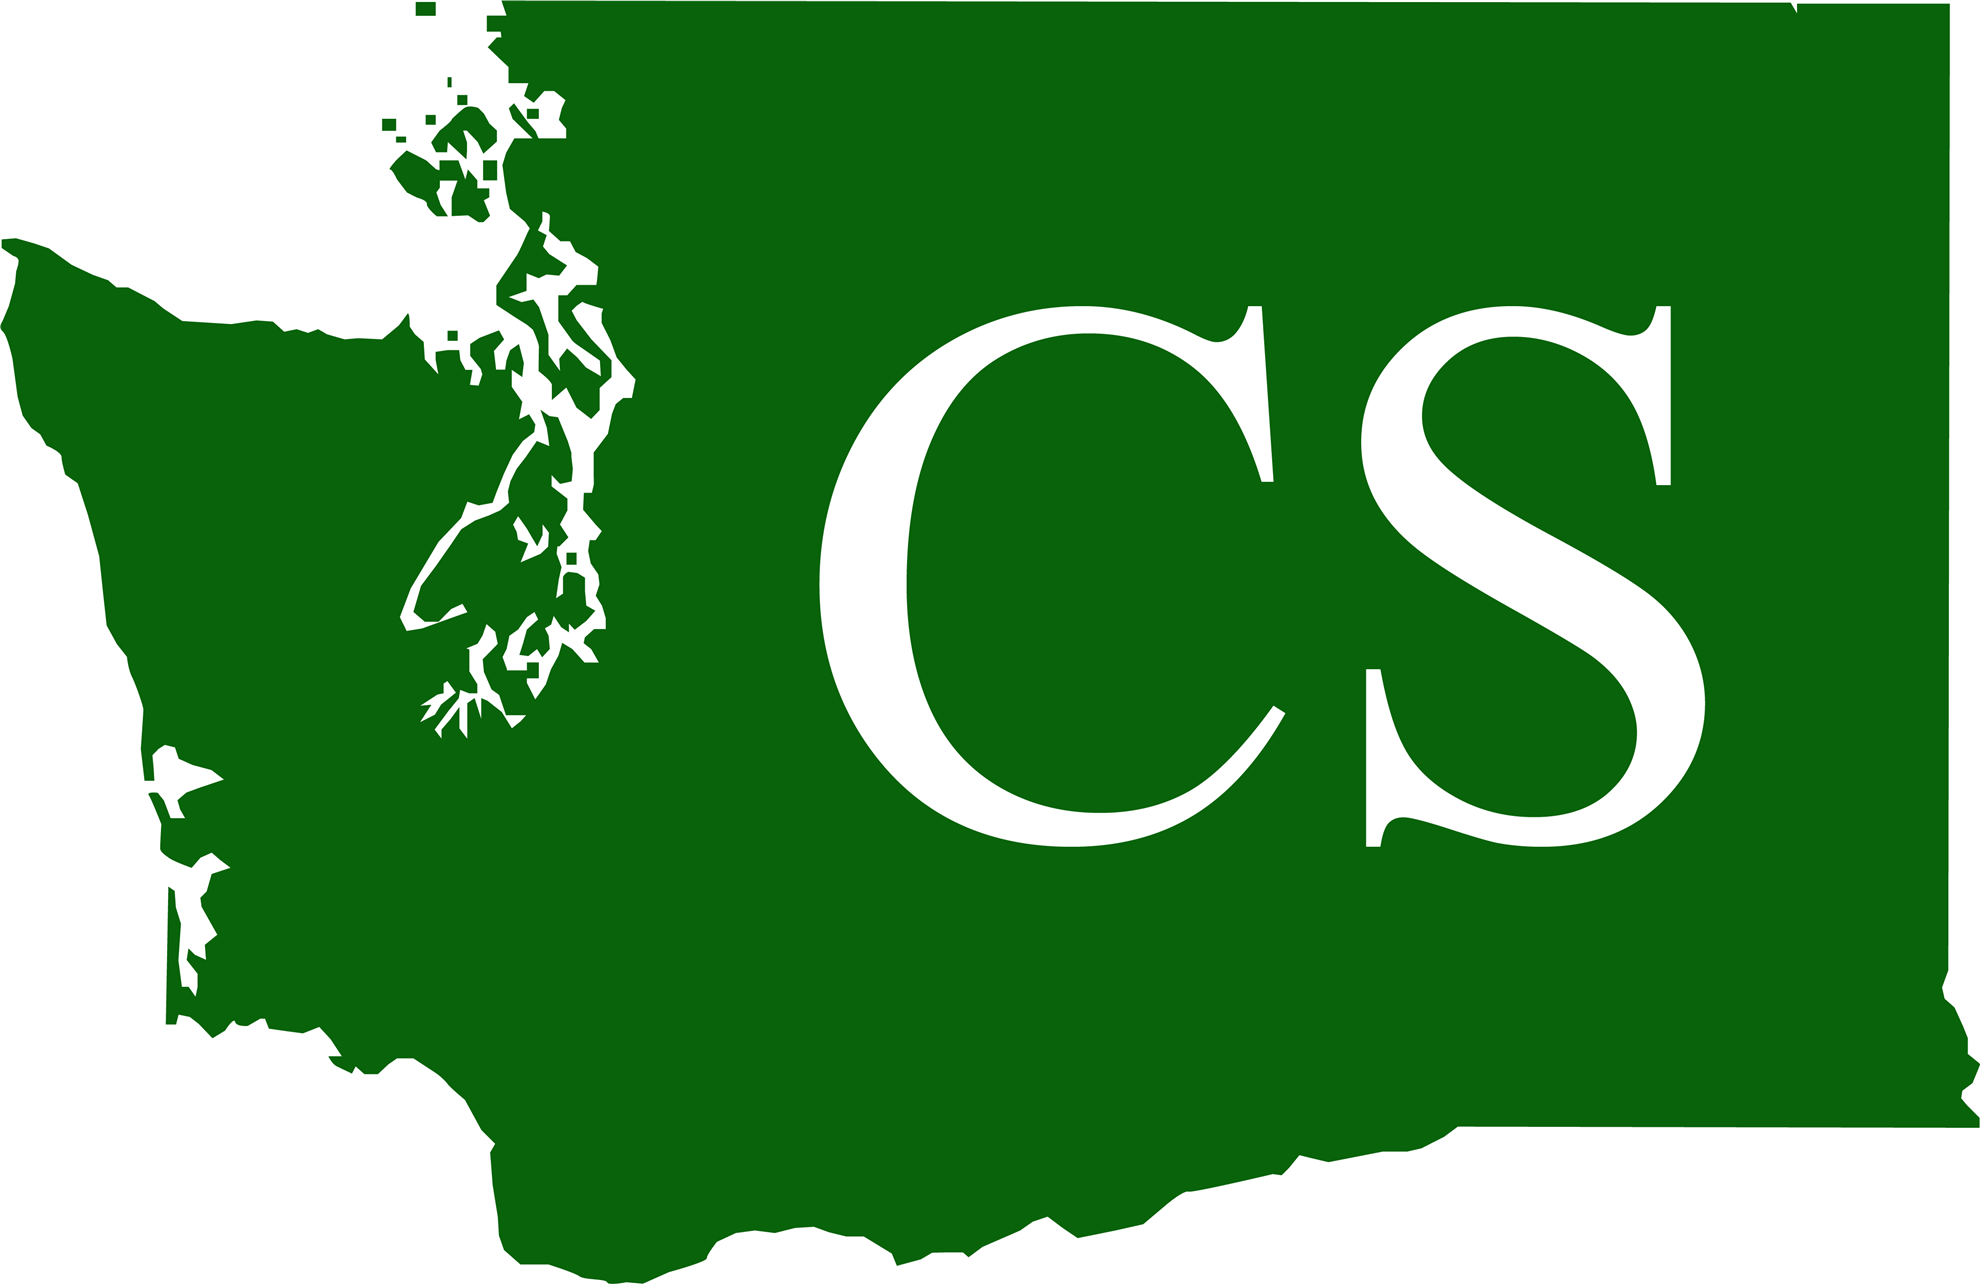 Green silhouette of WA state with CS in the middle